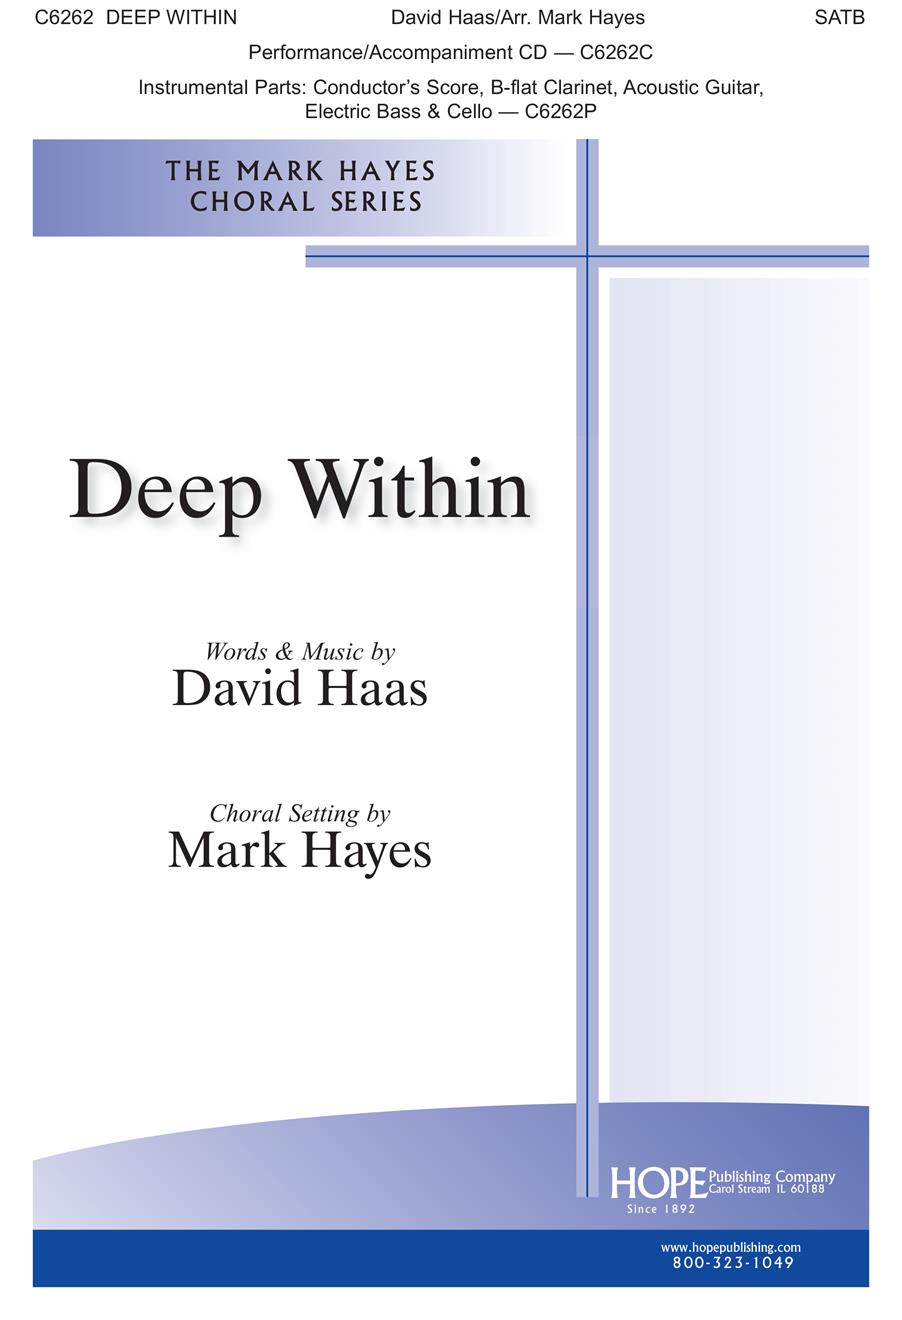 Deep Within - SATB Cover Image